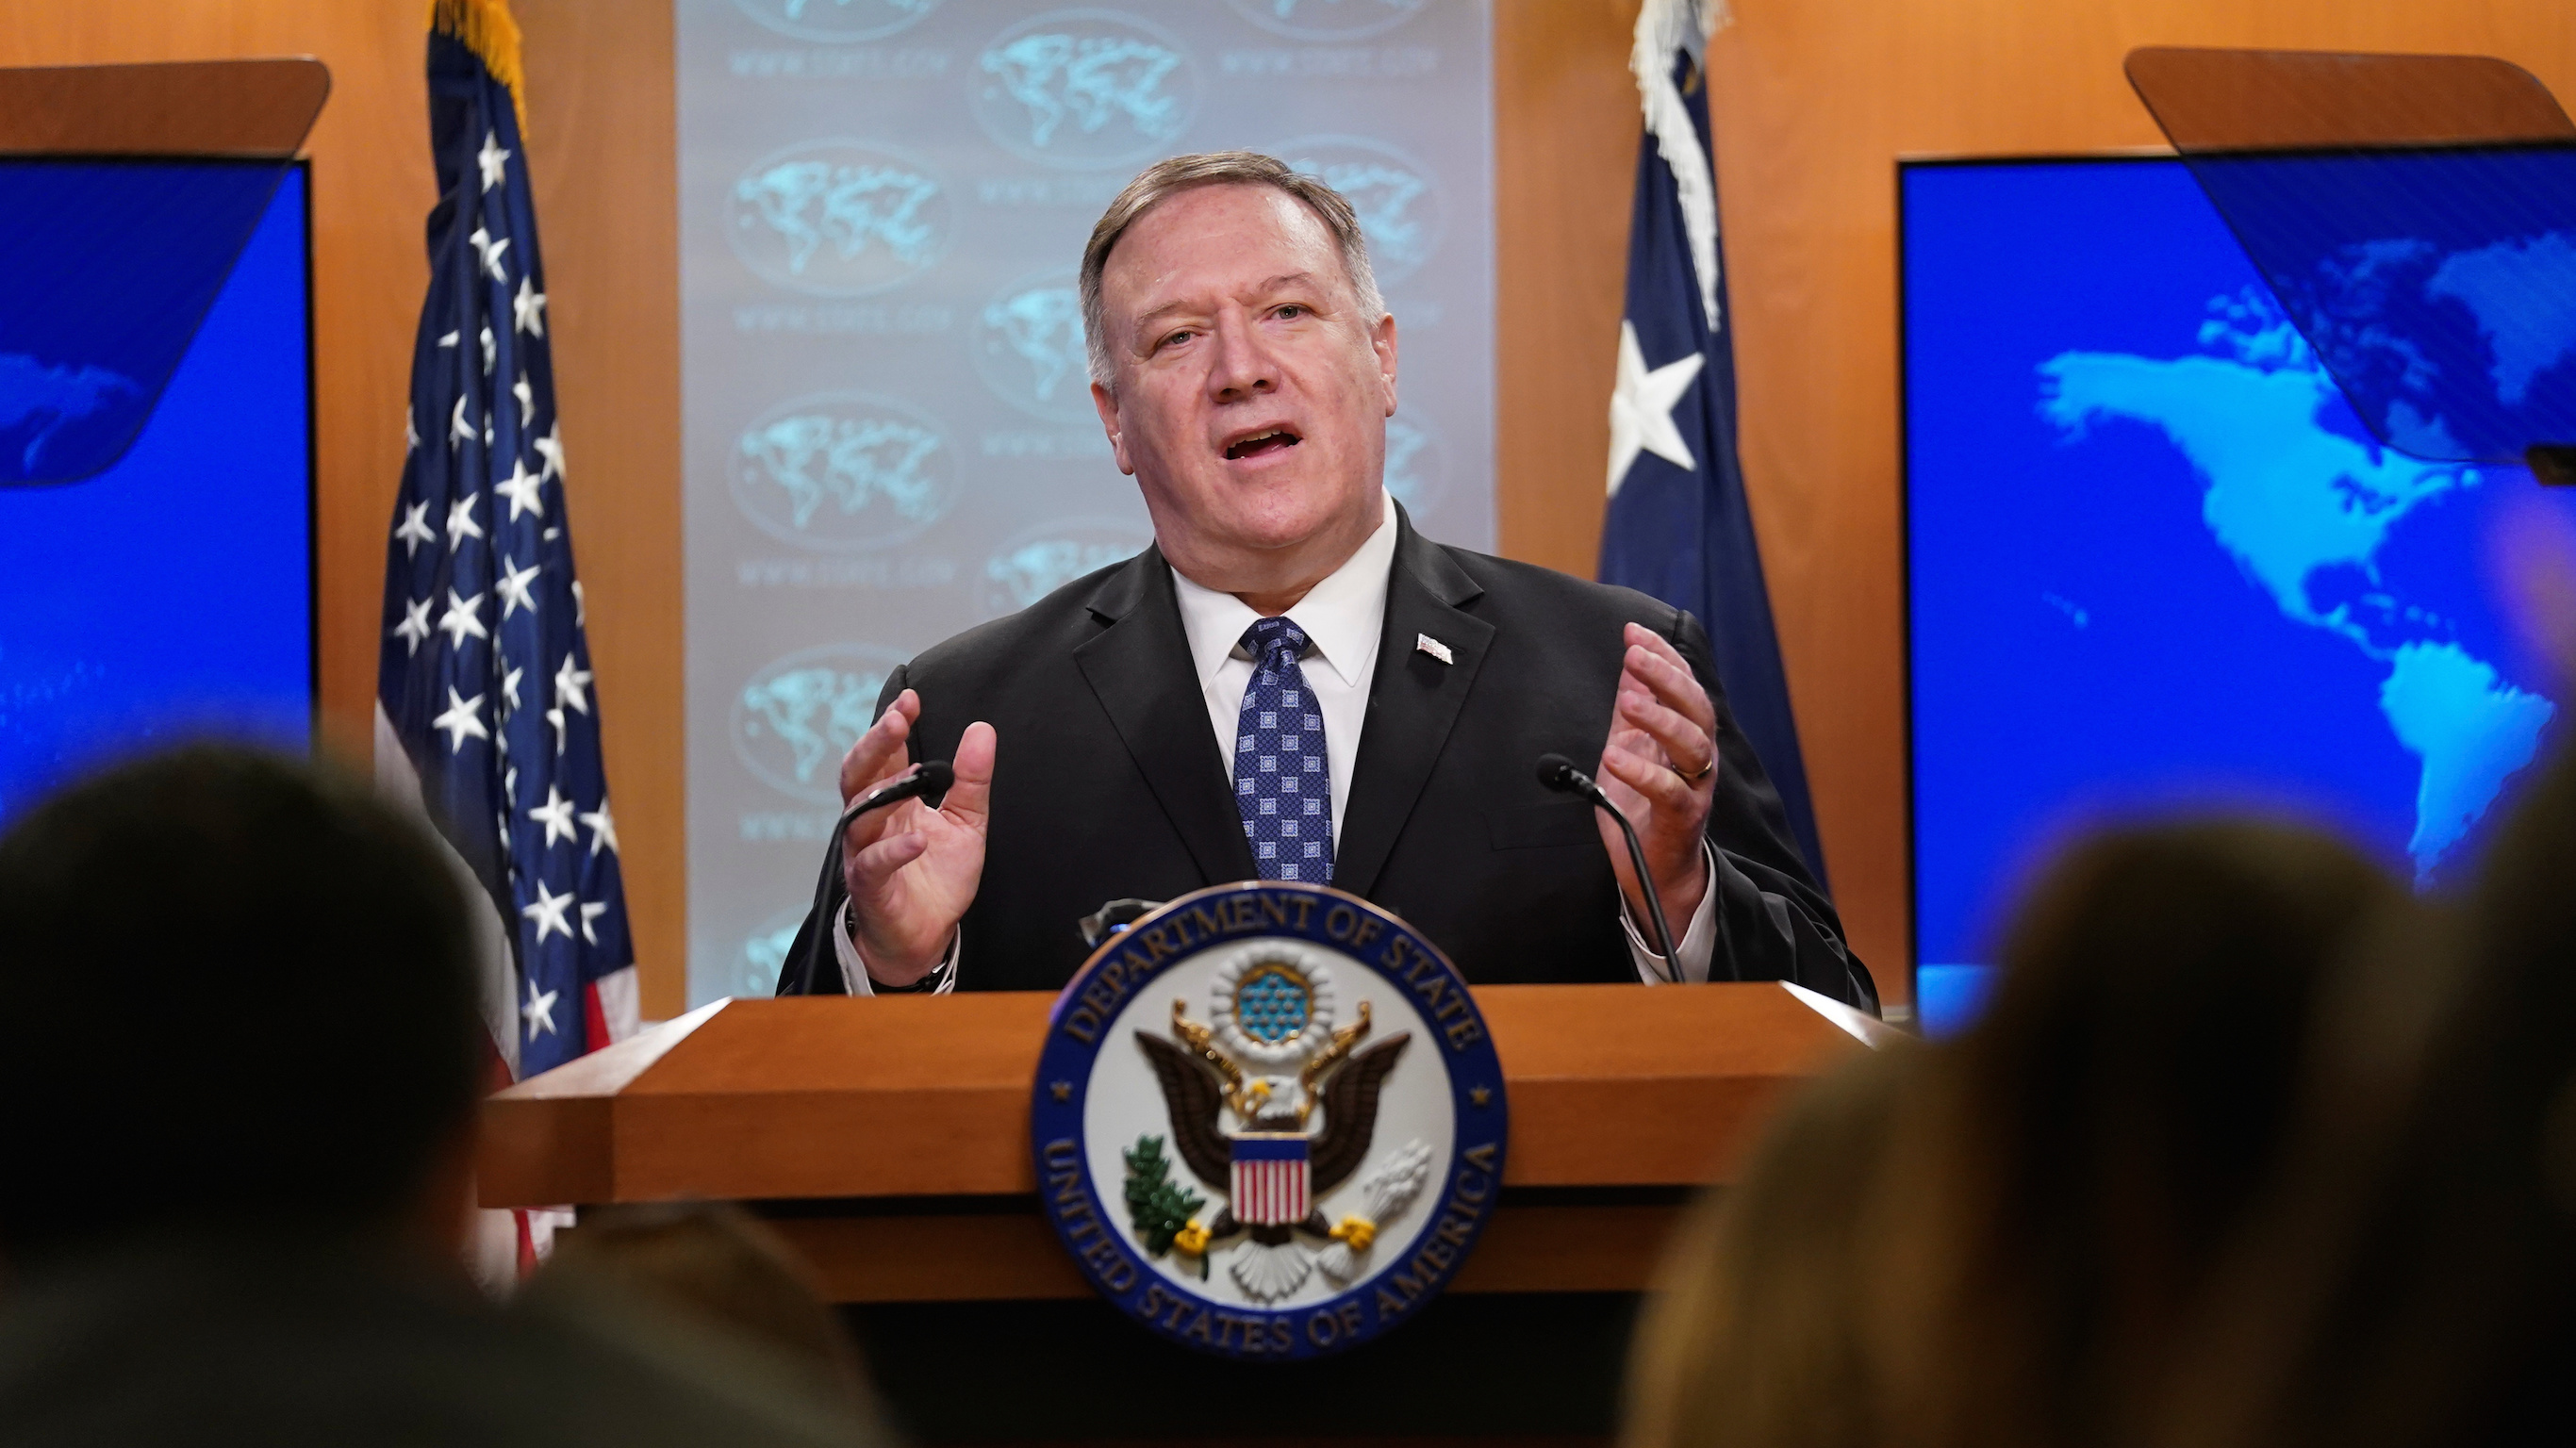 Syrian Army Victory In Idlib Is Impossible: Mike Pompeo